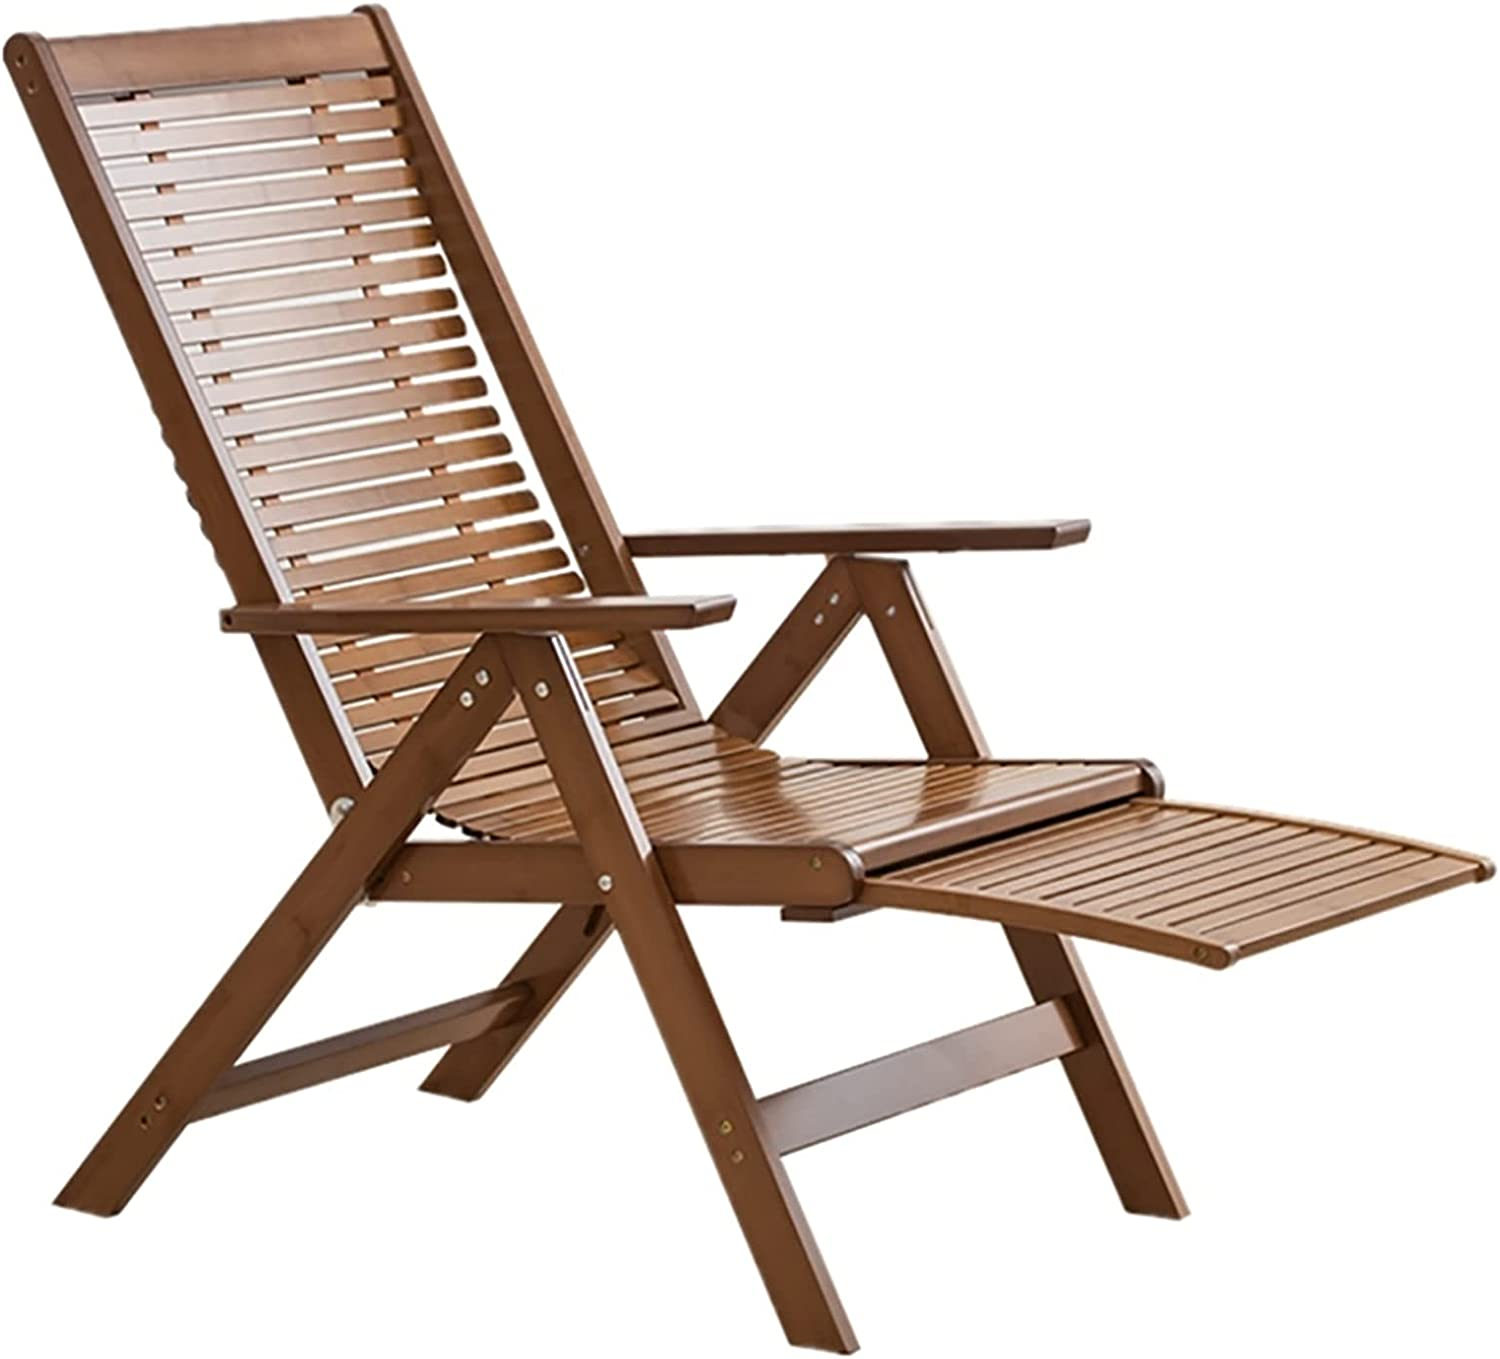 All items in the store Max 74% OFF Outdoor Deck Chair Wooden Garden Lounge Beach Sling